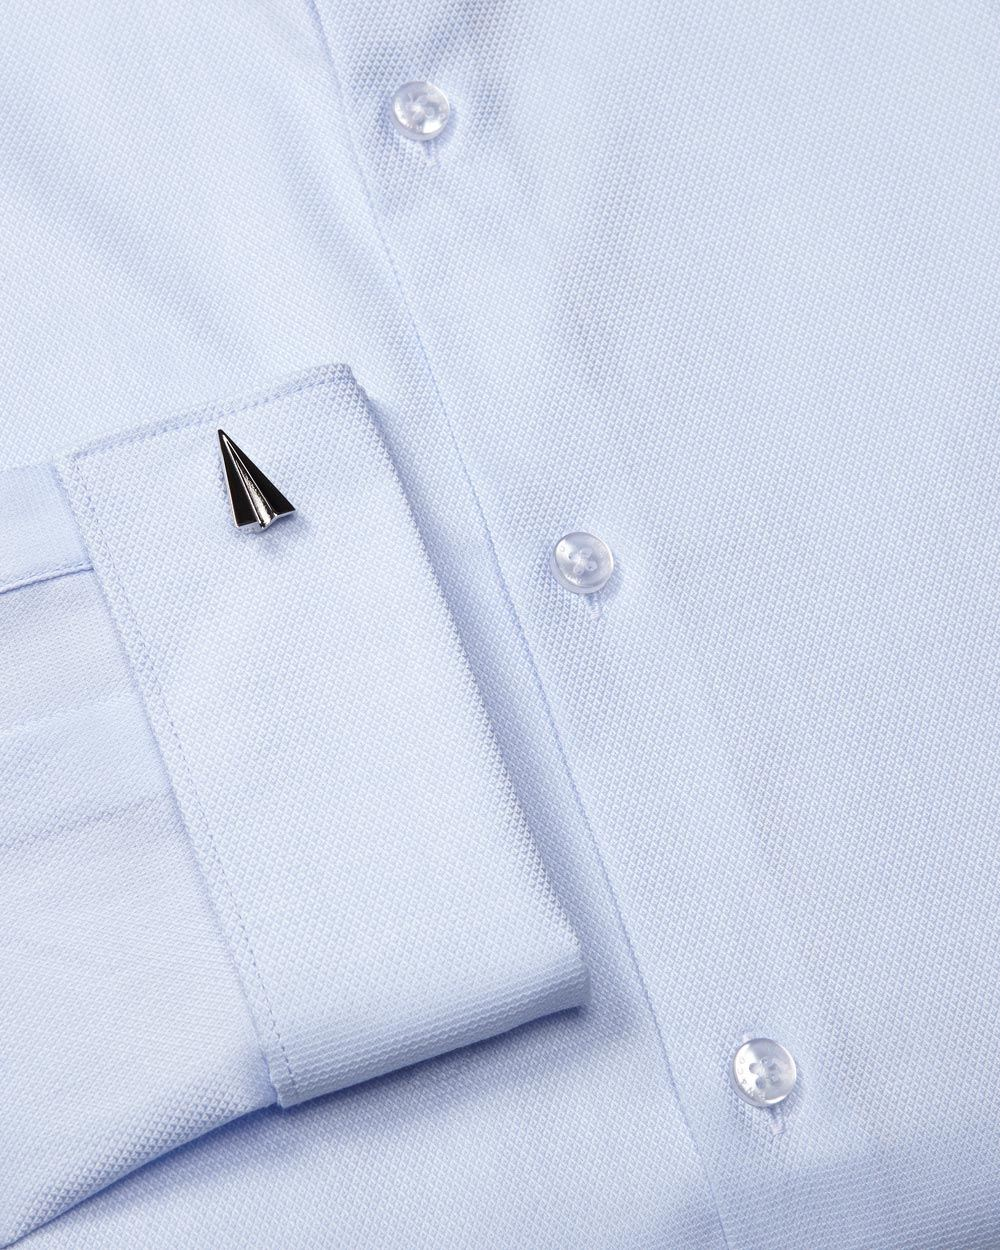 Athletic Slim Fit Dress Shirts Chad Crowley Productions